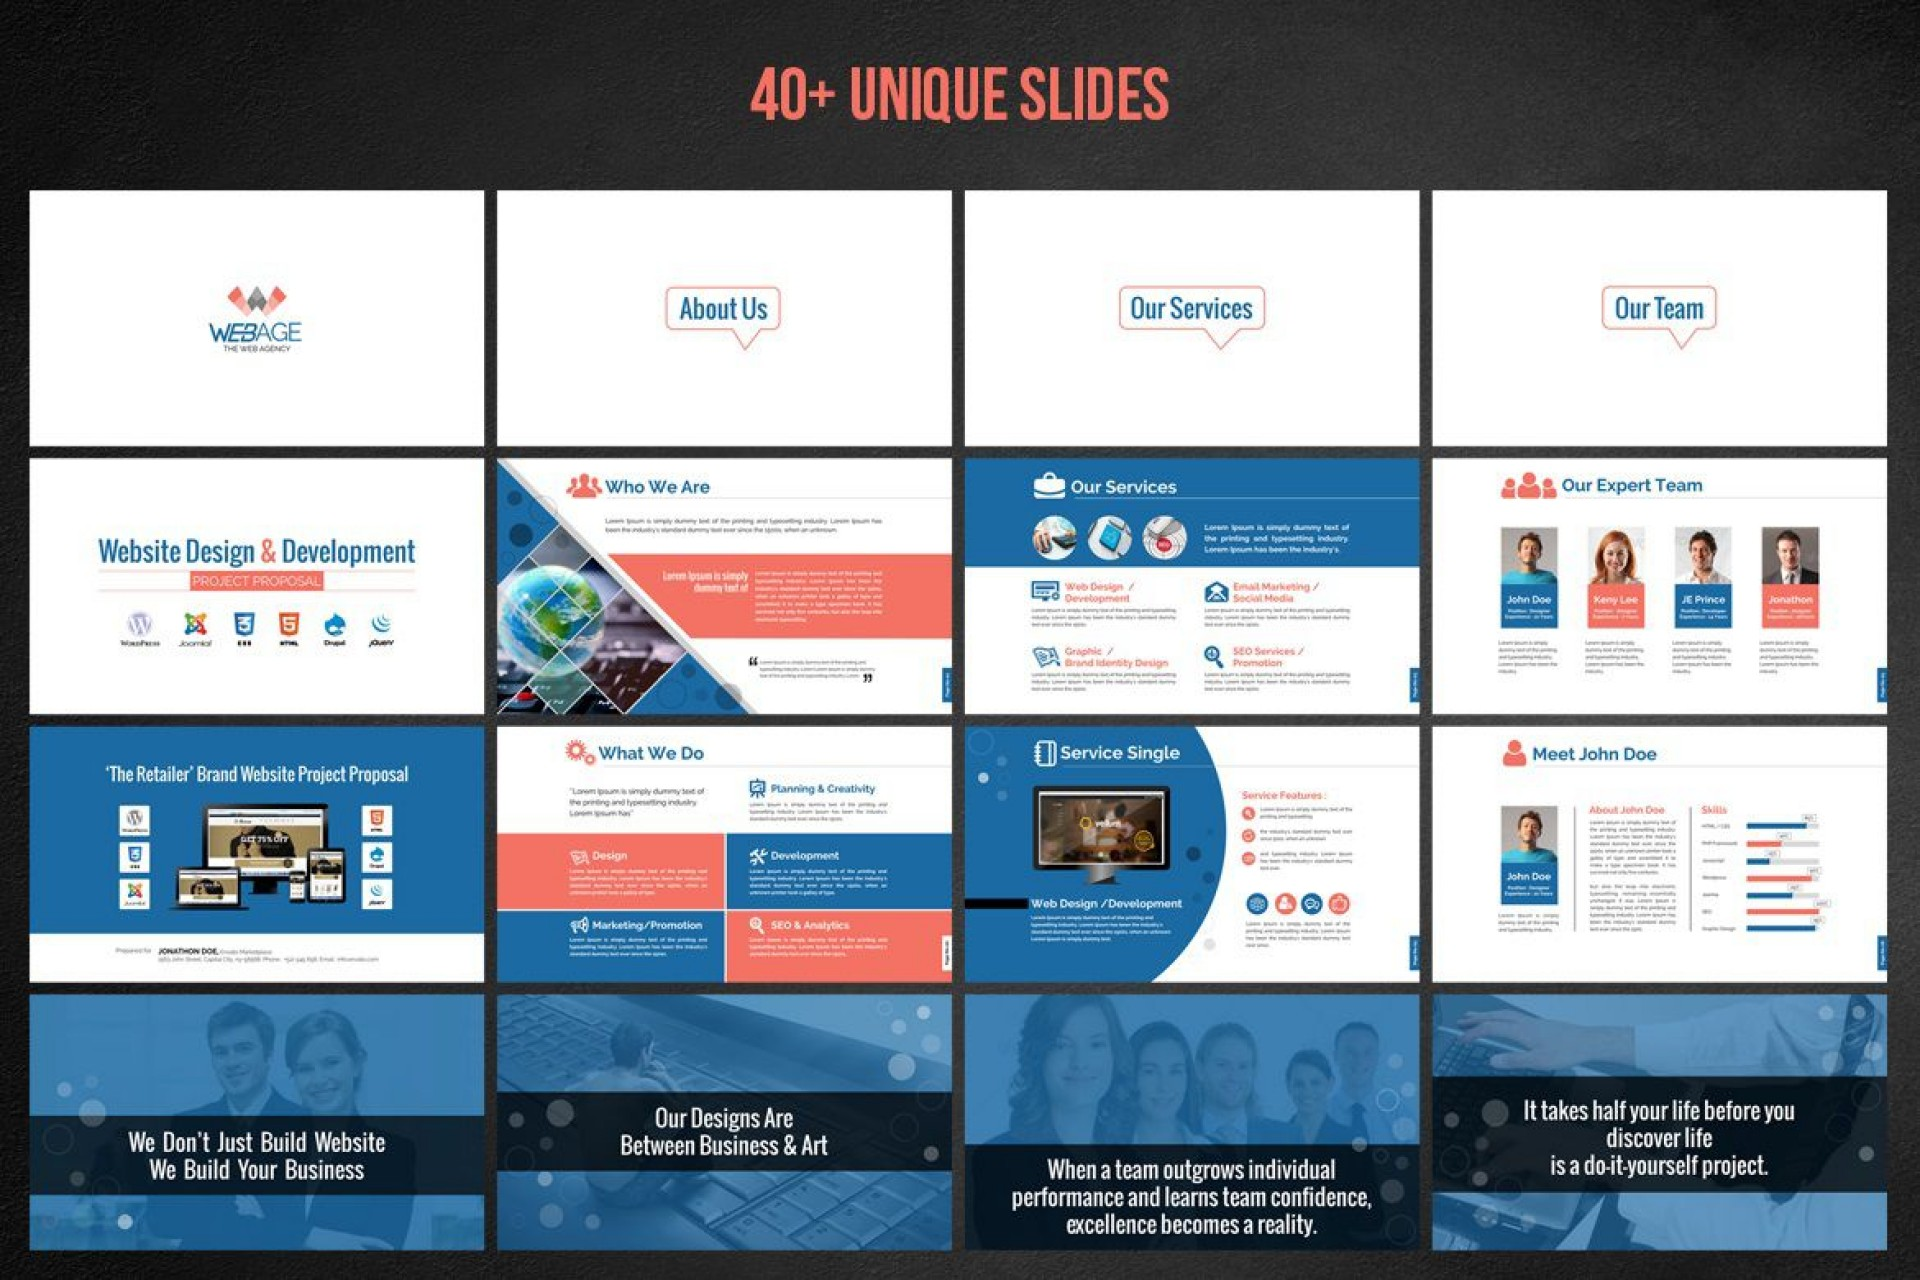 000 Top Website Design Proposal Template Ppt Example 1920